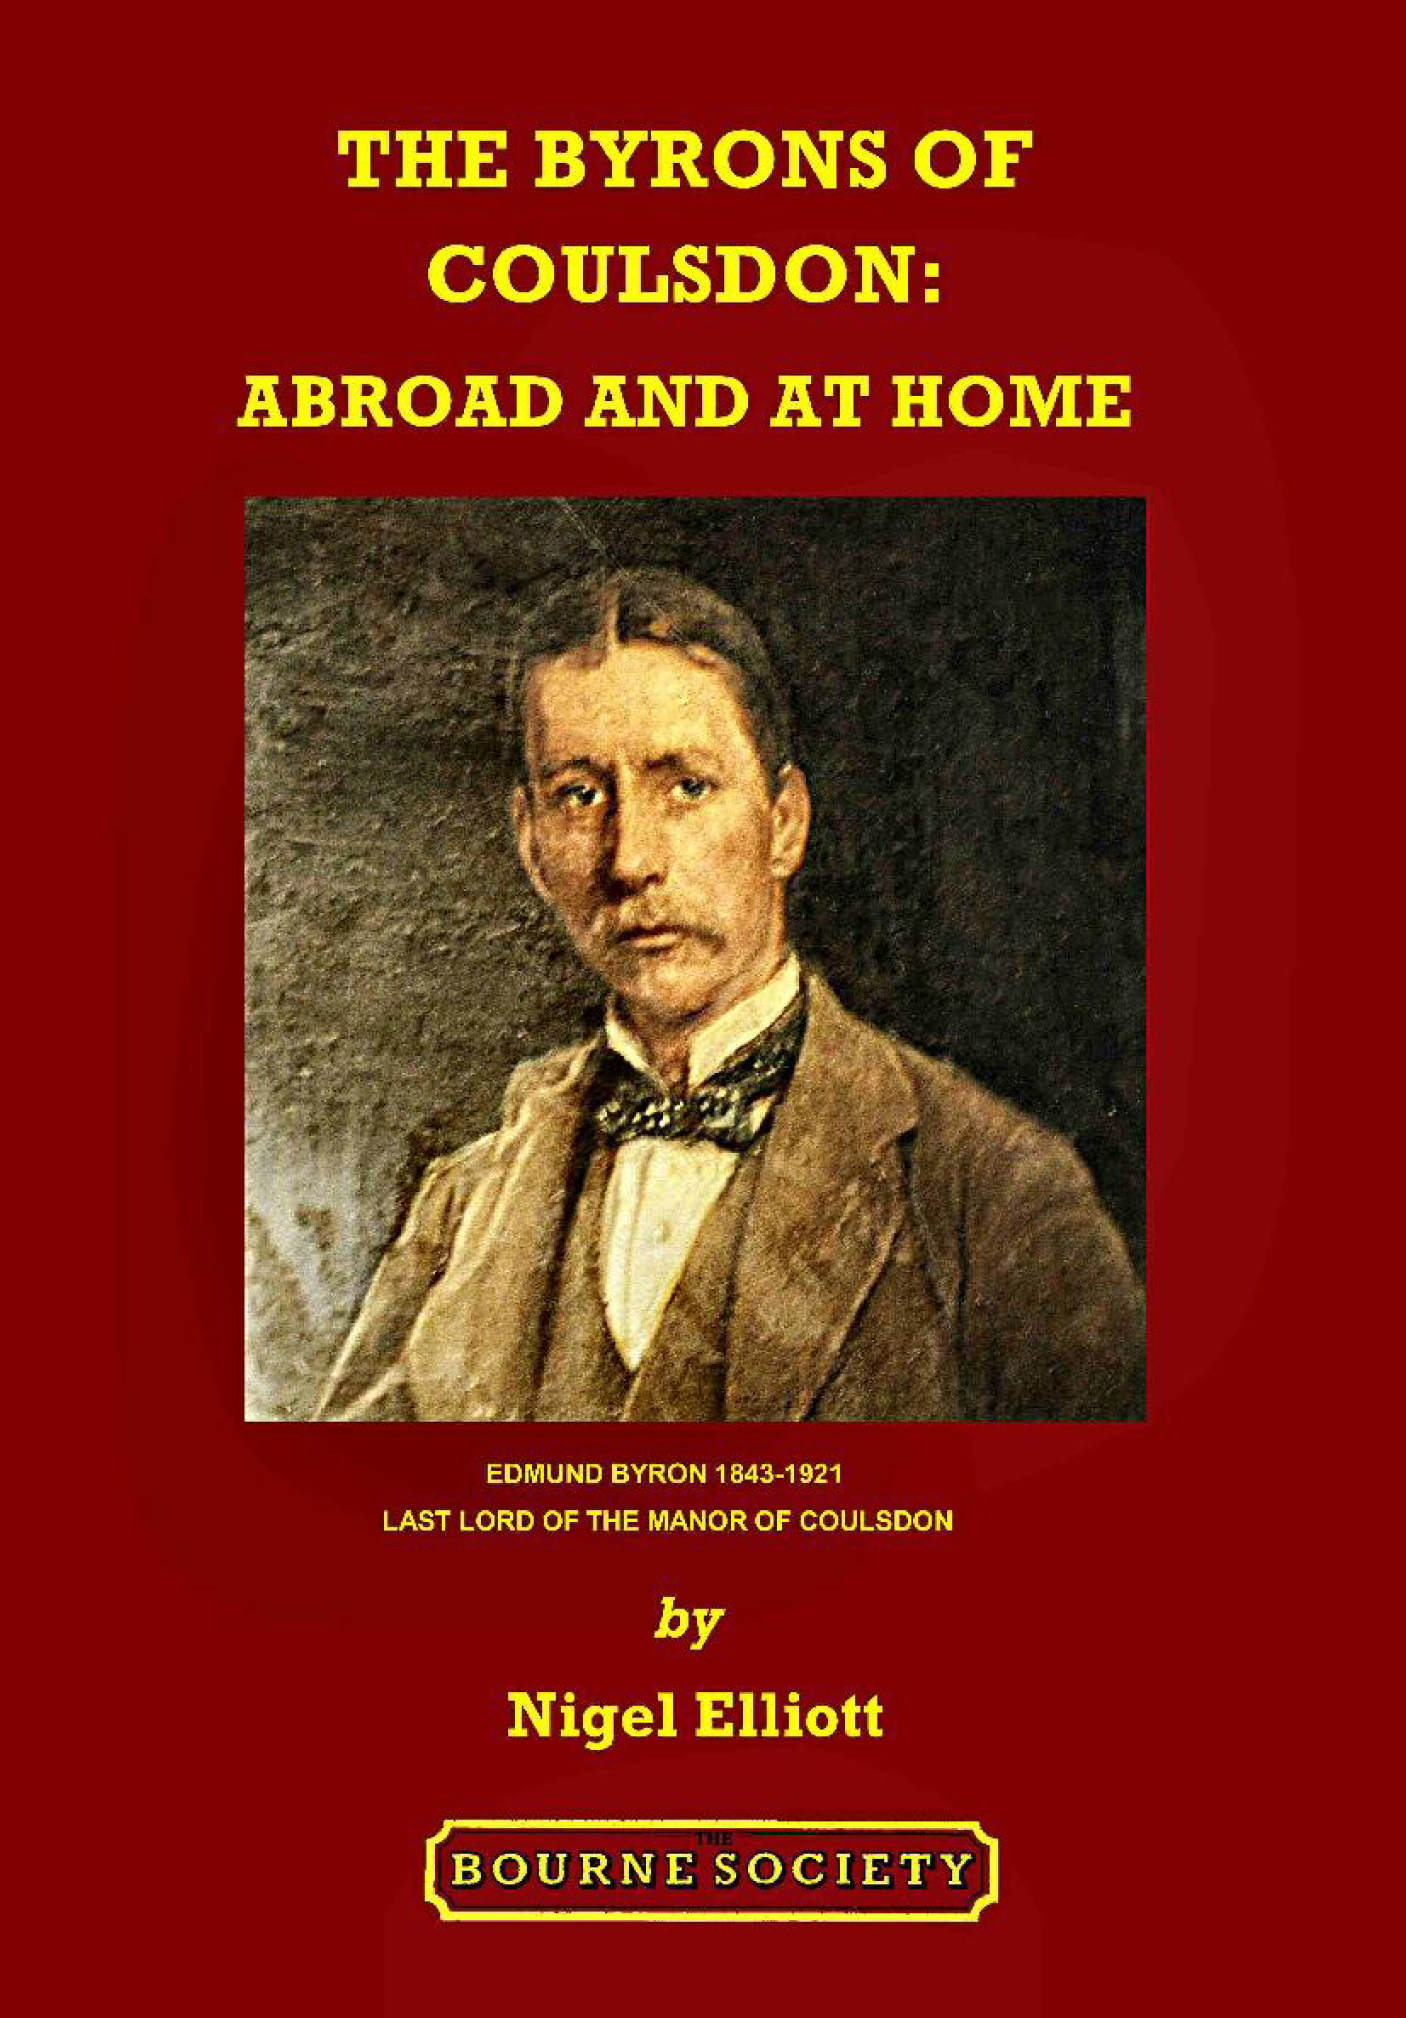 Red book cover with title in yellow, The Byrons of Coulsdon: Abroad and at Home.